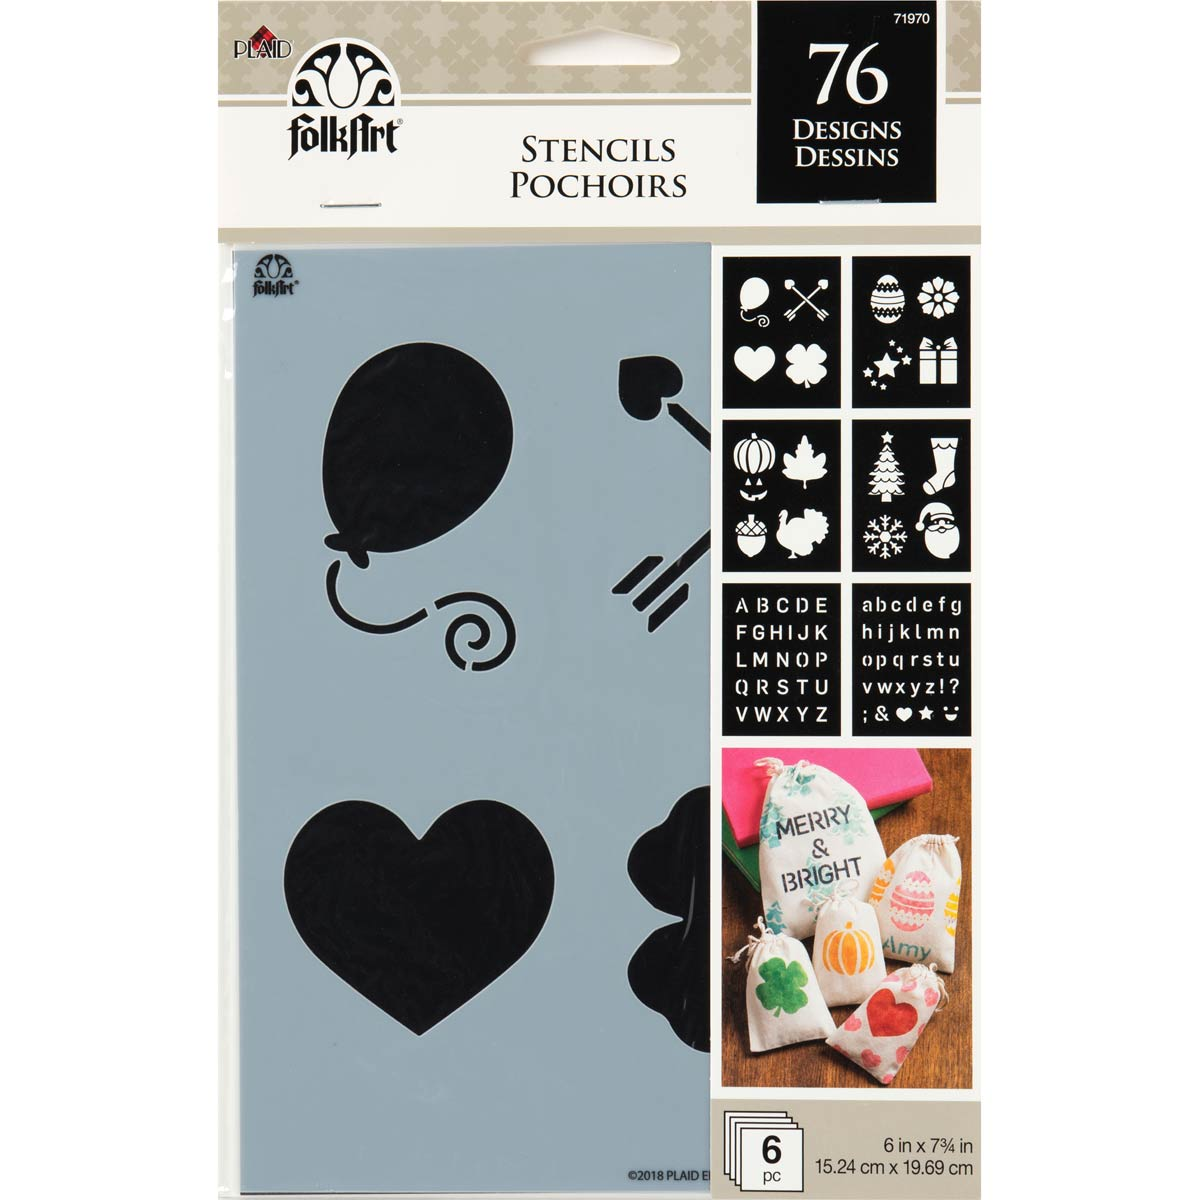 FolkArt ® Craft Stencils - Value Packs - Holiday - 71970